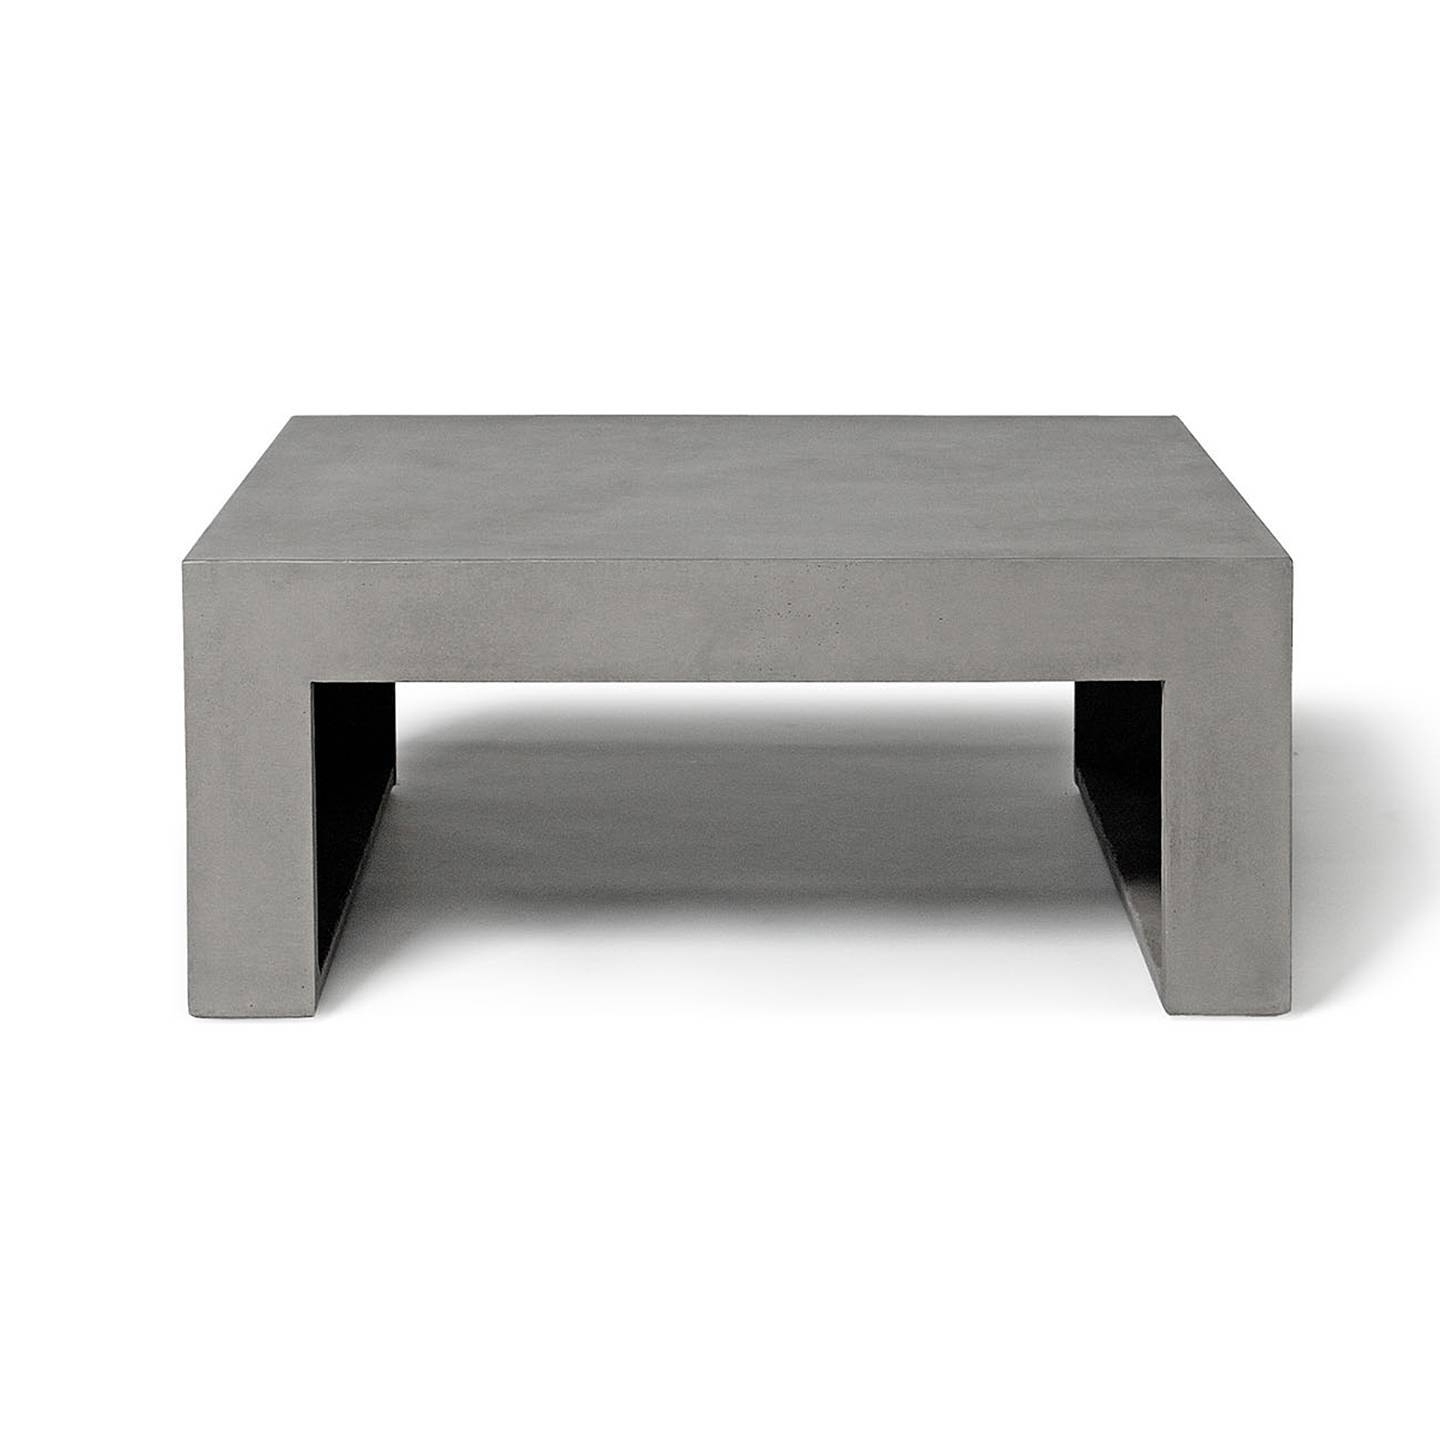 Dawn – Square Low Coffee Table | Lyon Béton Intended For Square Low Coffee Tables (View 7 of 20)